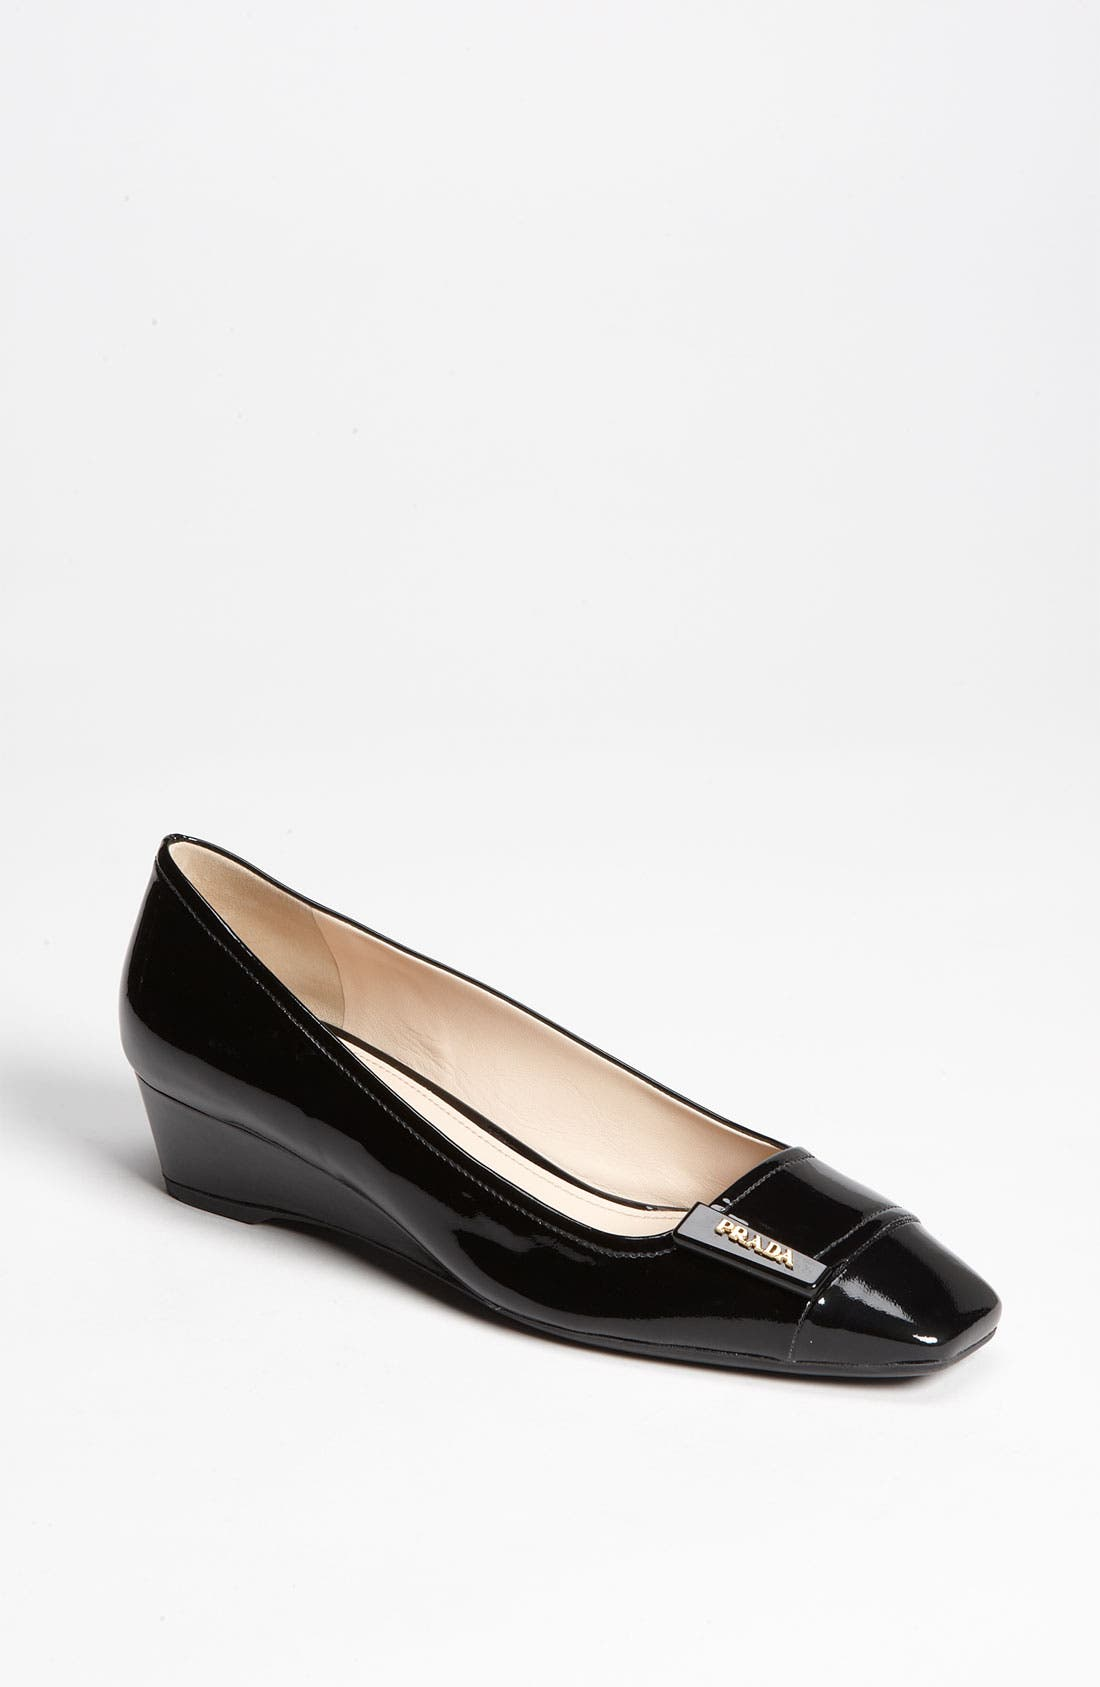 Alternate Image 1 Selected - Prada Buckle Wedge Pump